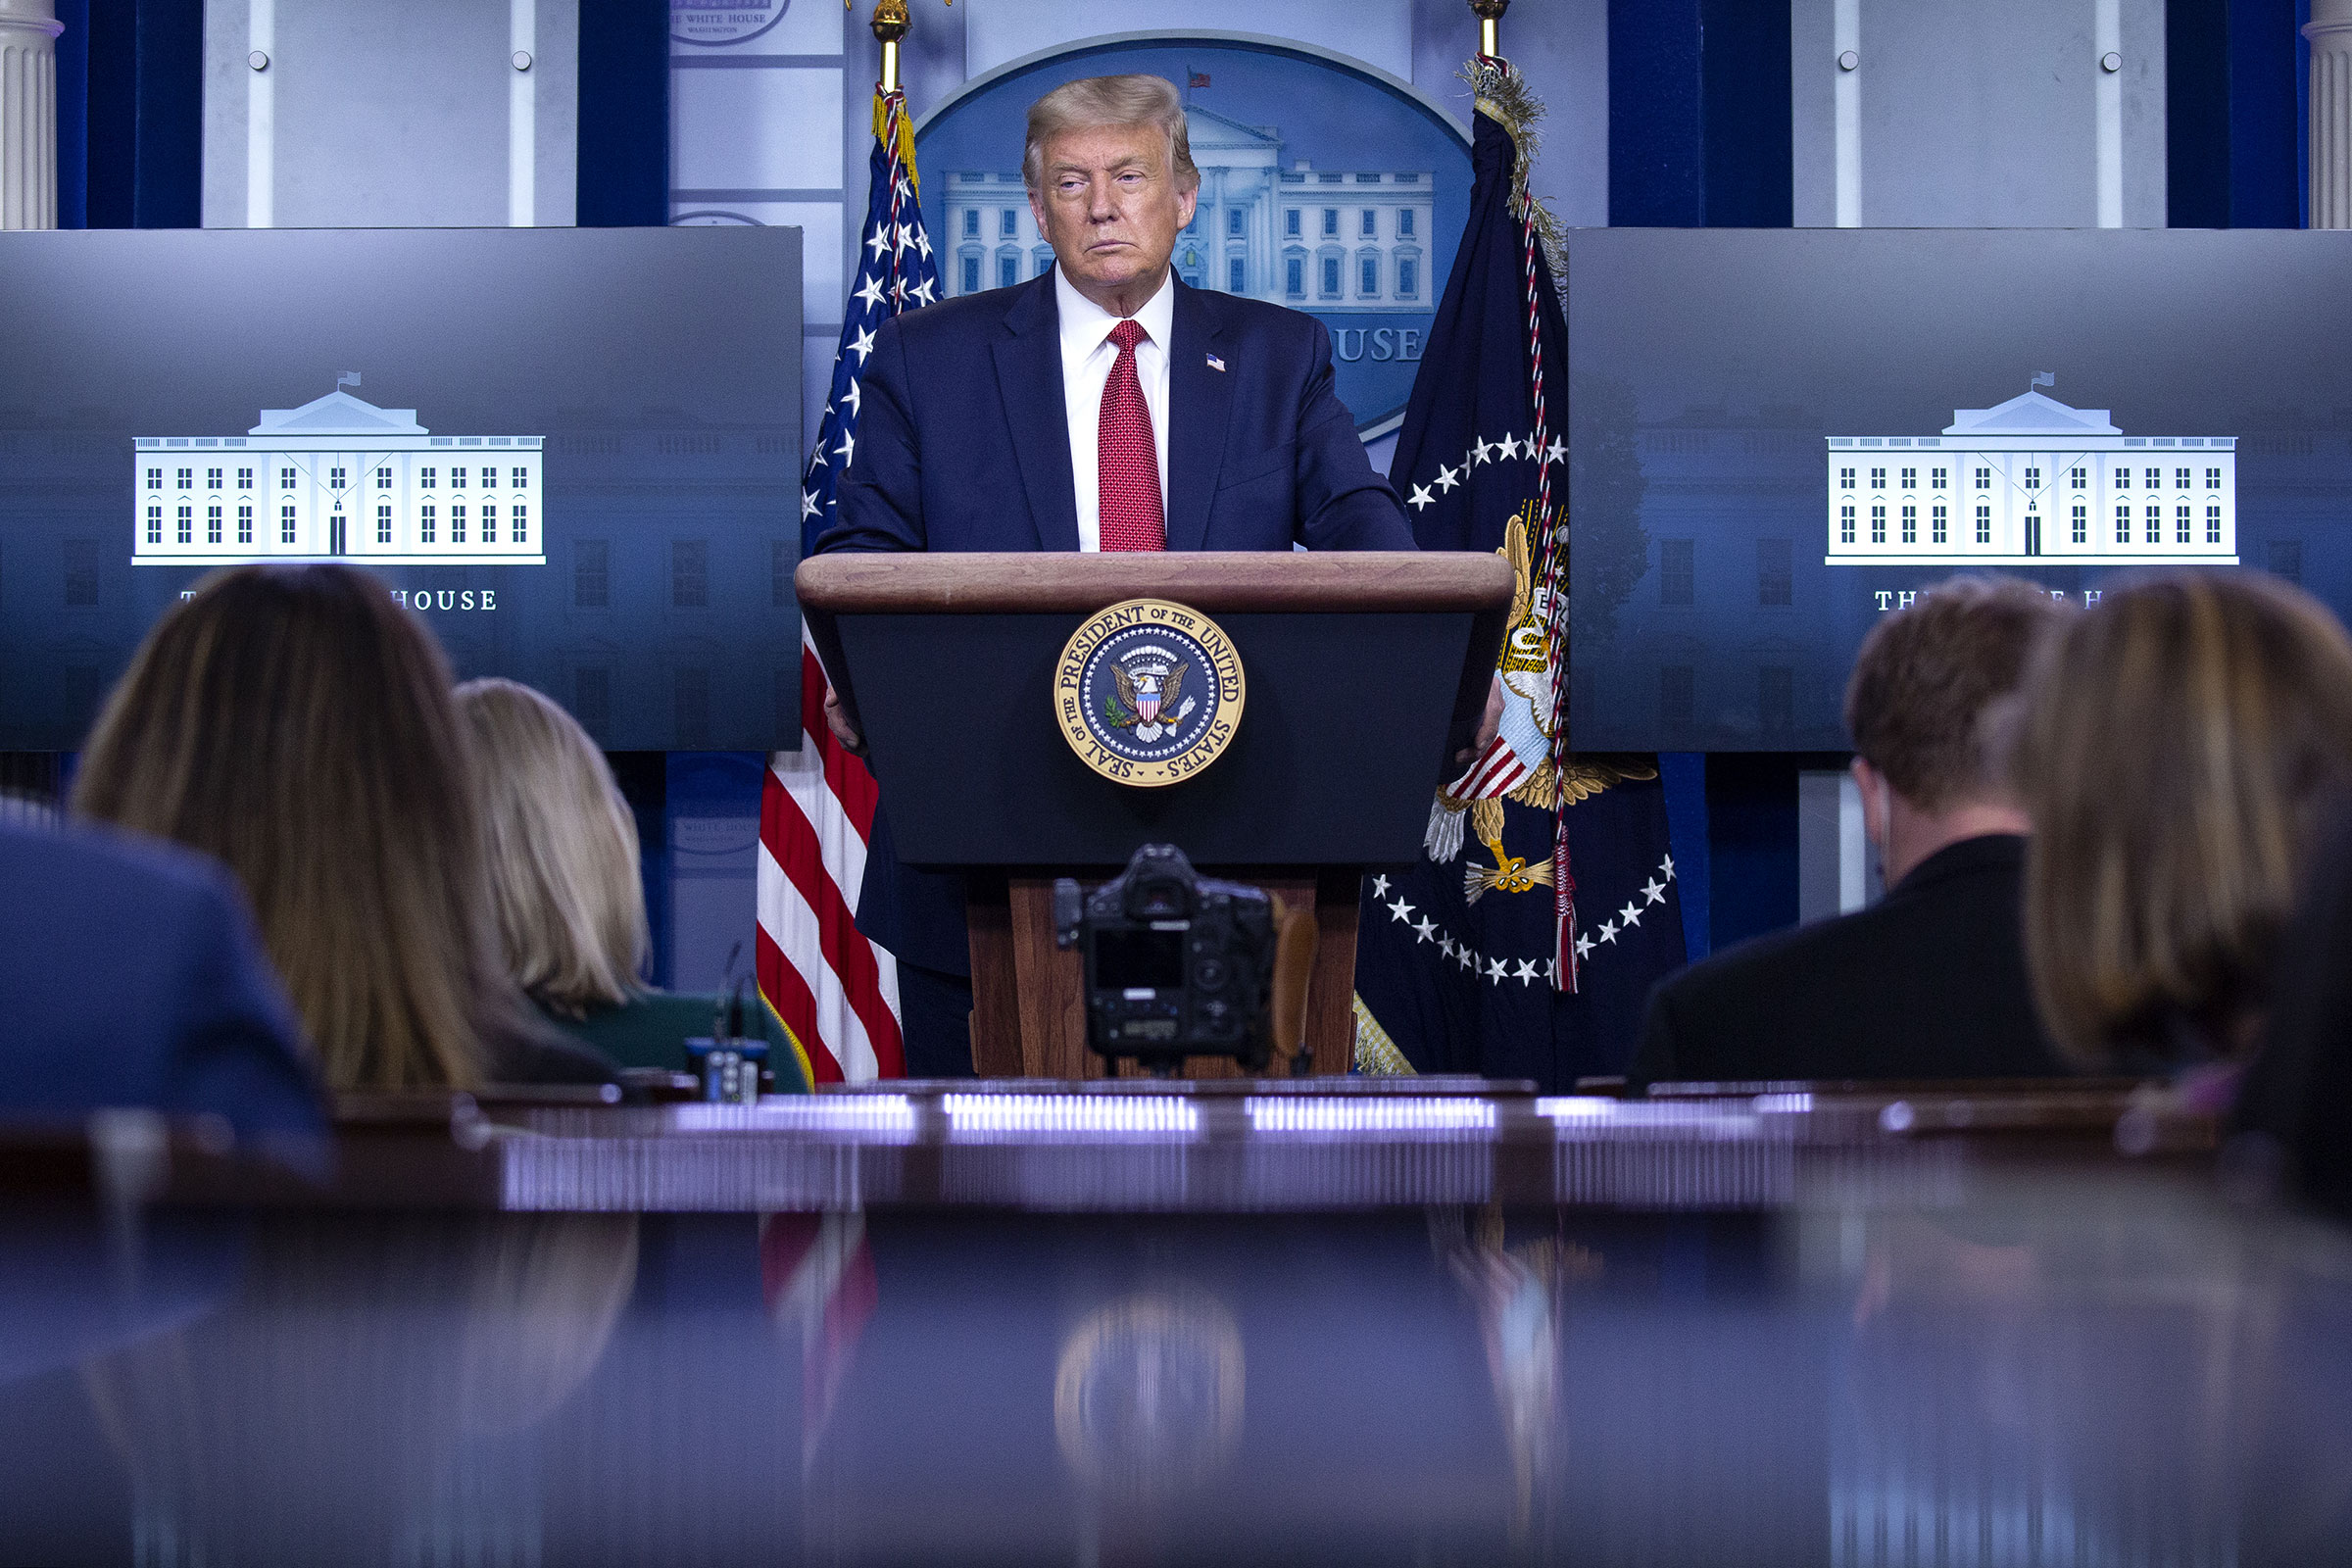 President Donald Trump listens during a news conference in the White House Press Briefing Room on Aug. 10, 2020.